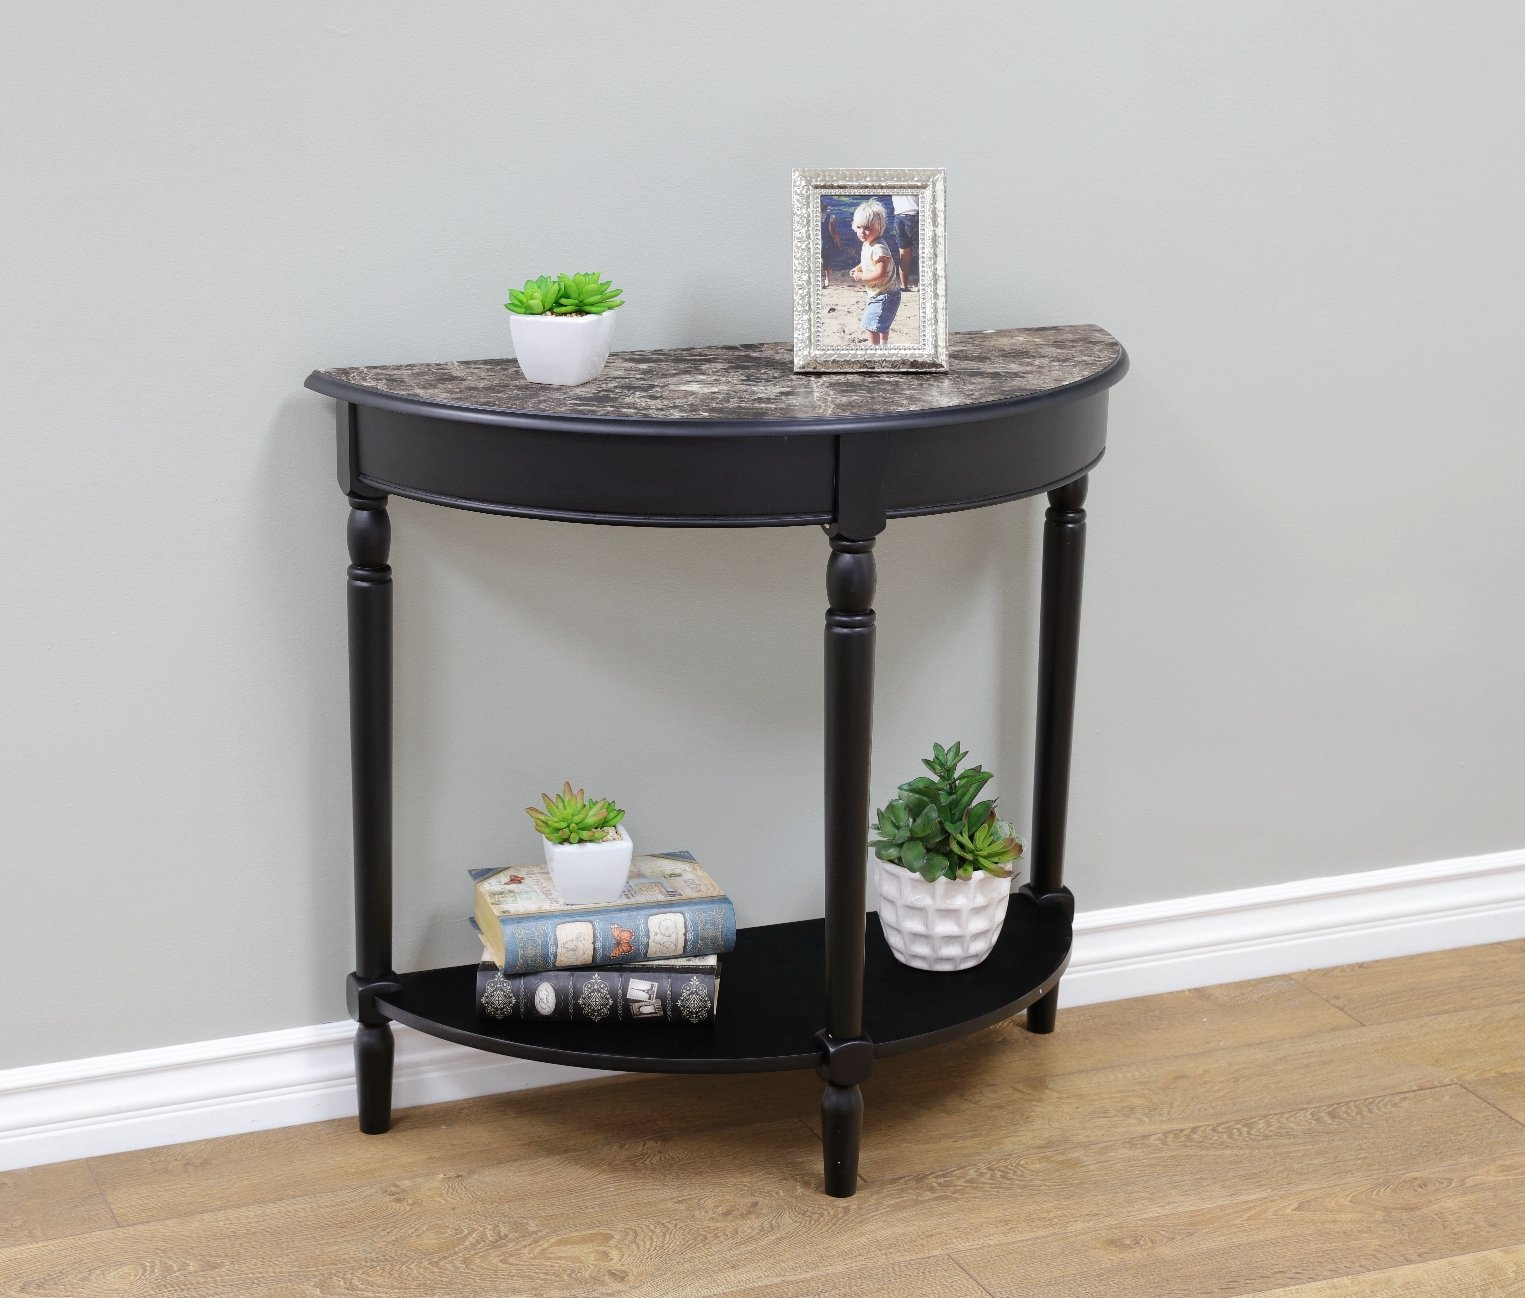 Frenchi Home Furnishing Entryway Table with Faux Marble Top, Black